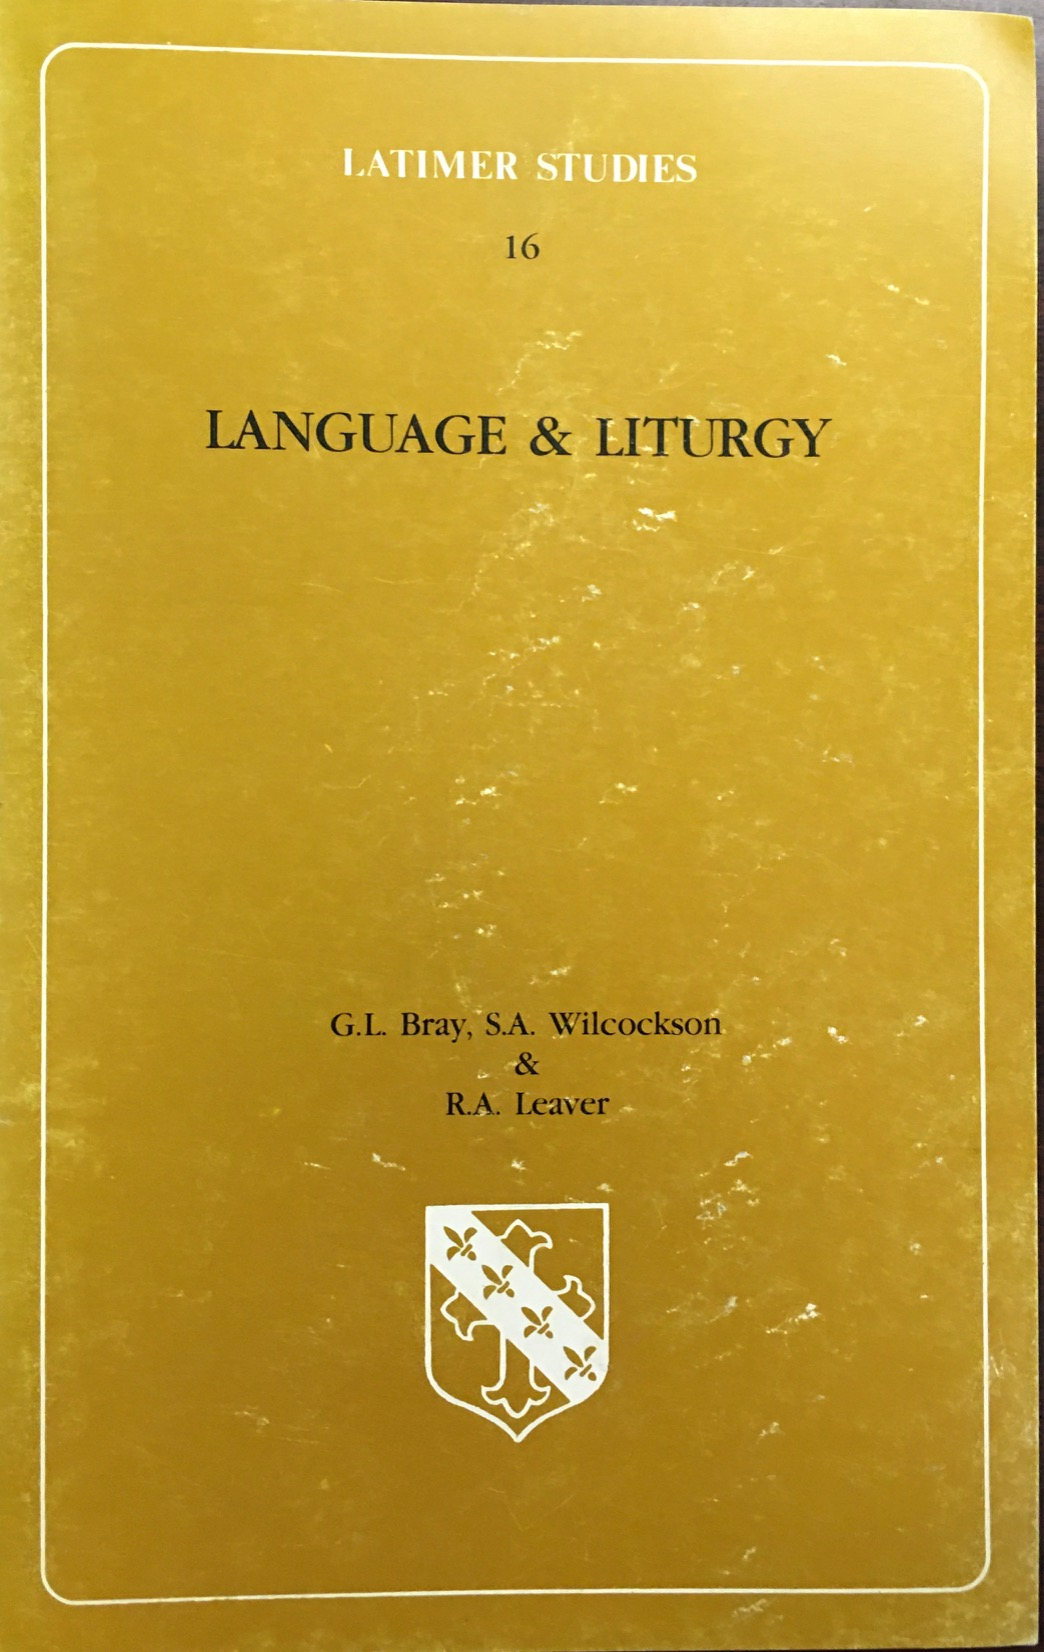 Image for Language & Liturgy (Latimer Studies - #16)